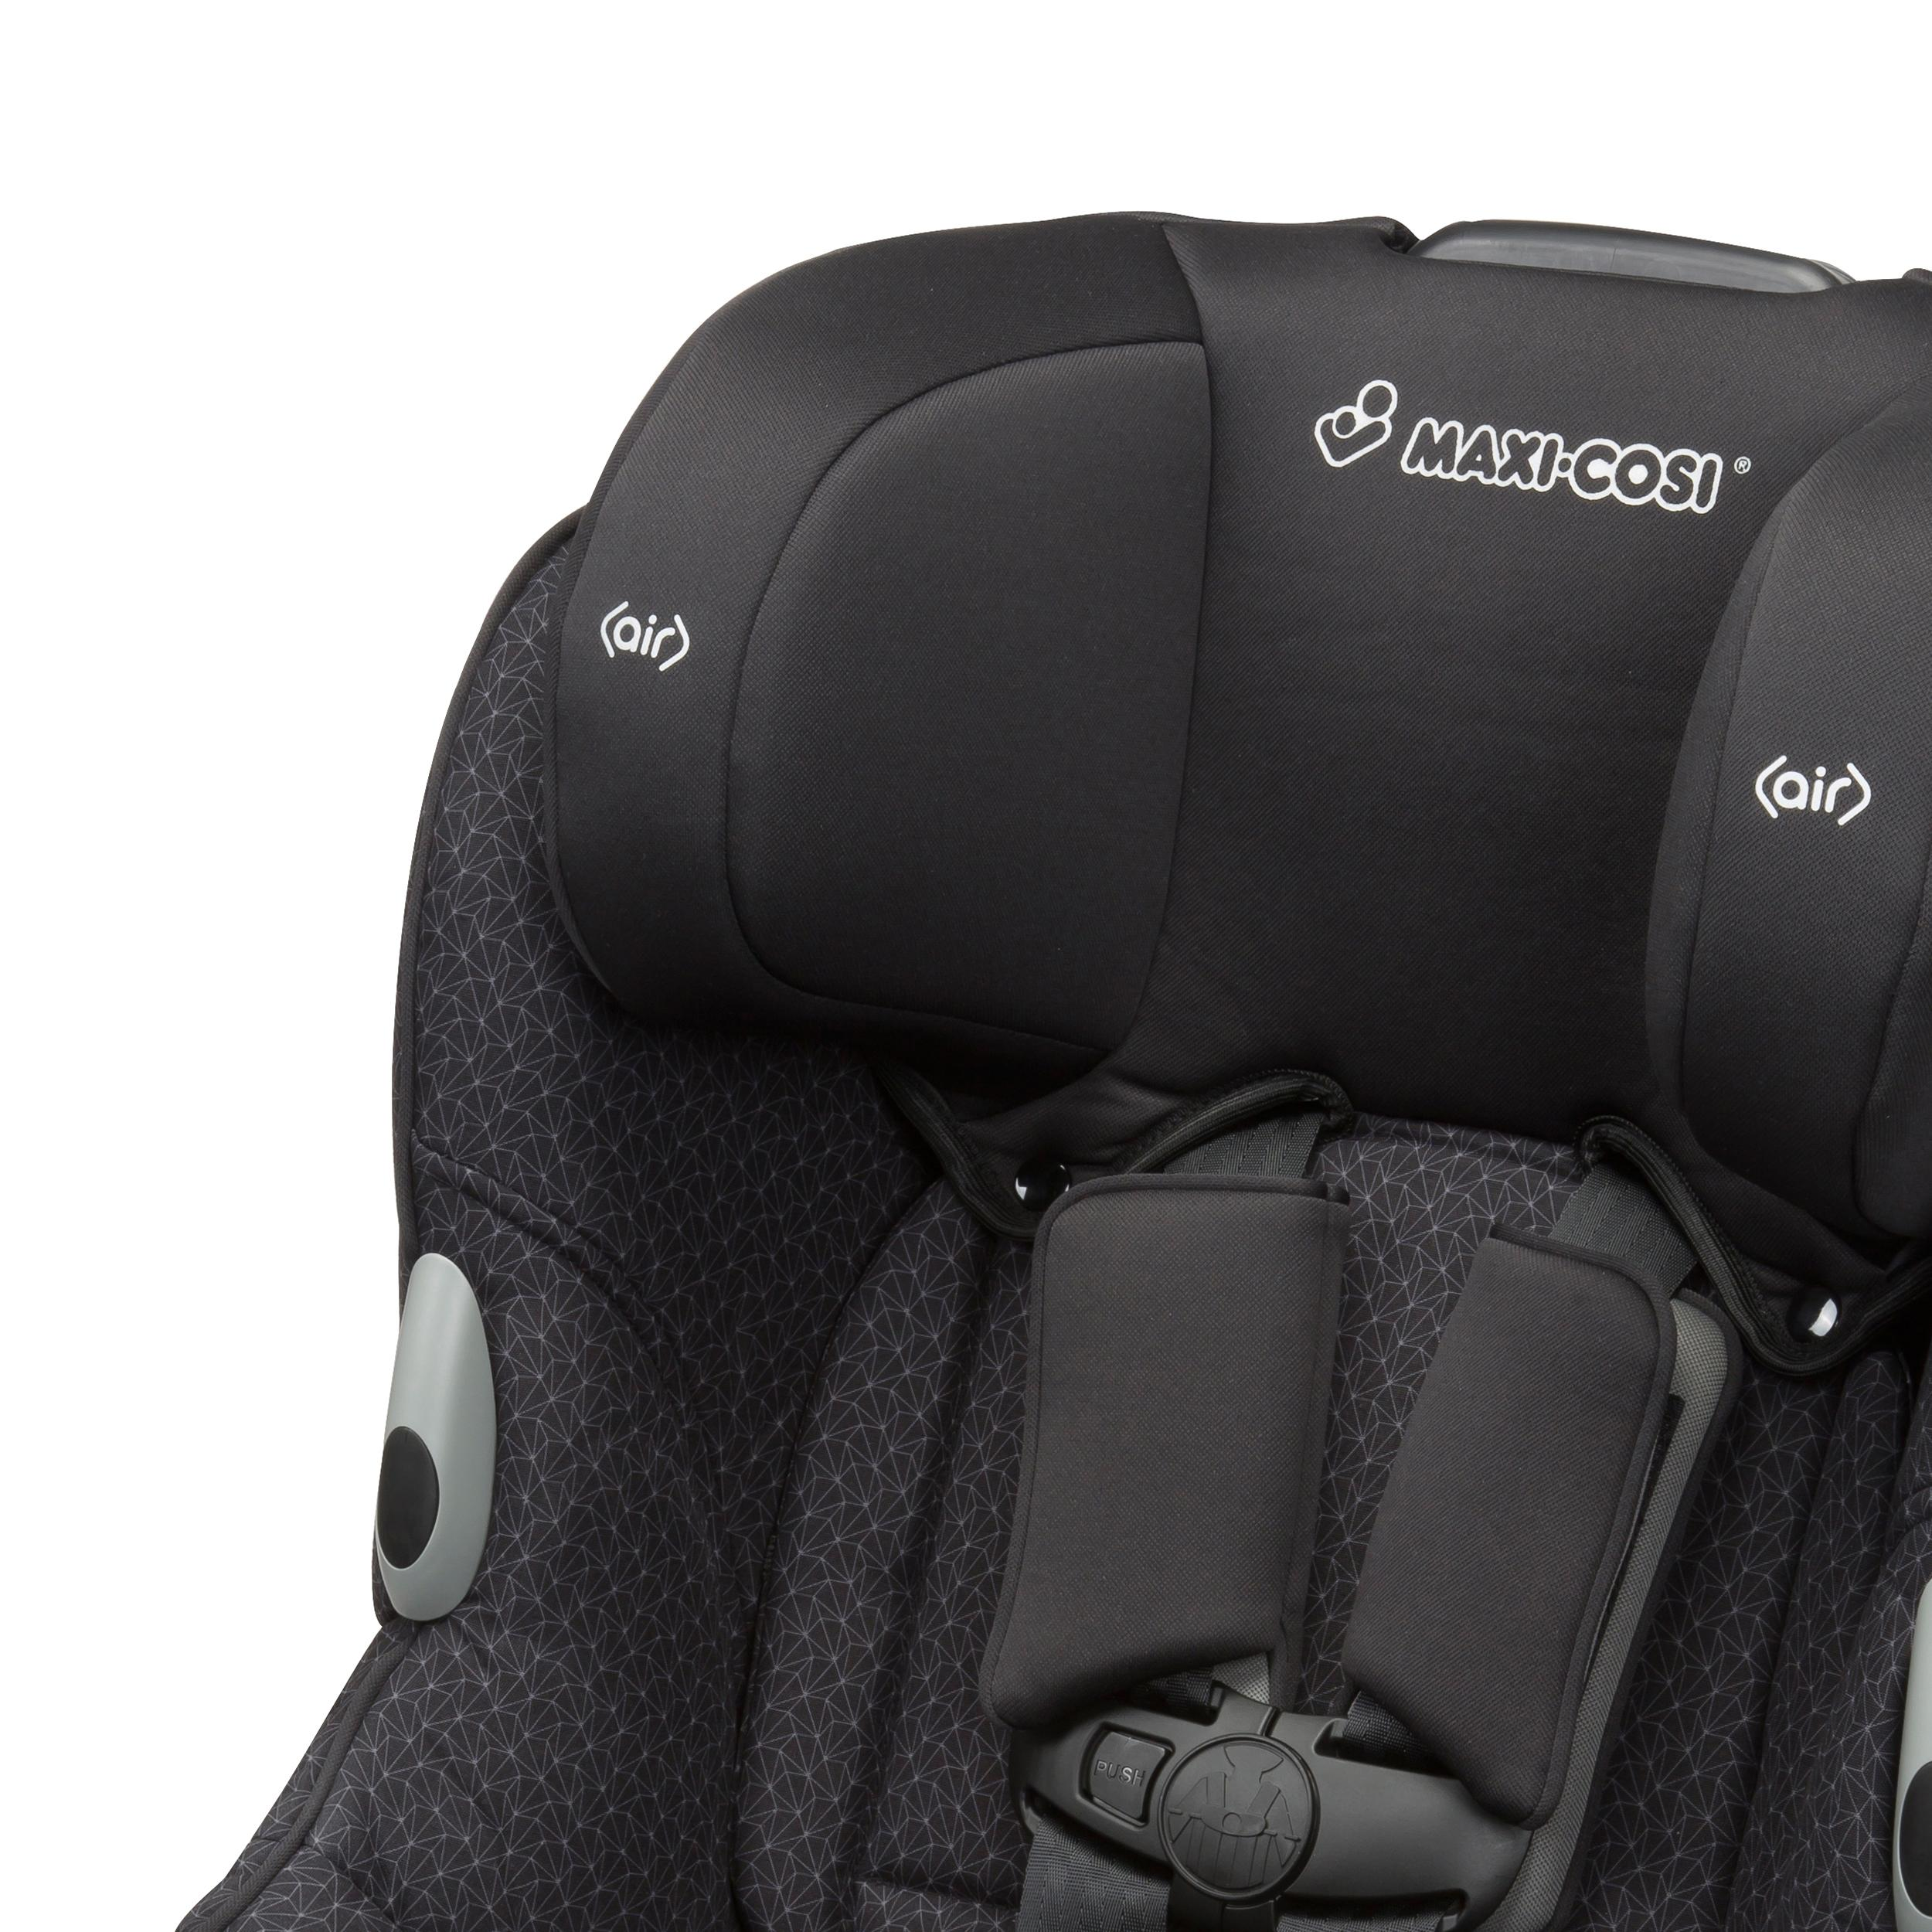 Maxi Cosi Pria 85 Convertible Car Seat Booster Infant Baby Premium Britax View Larger